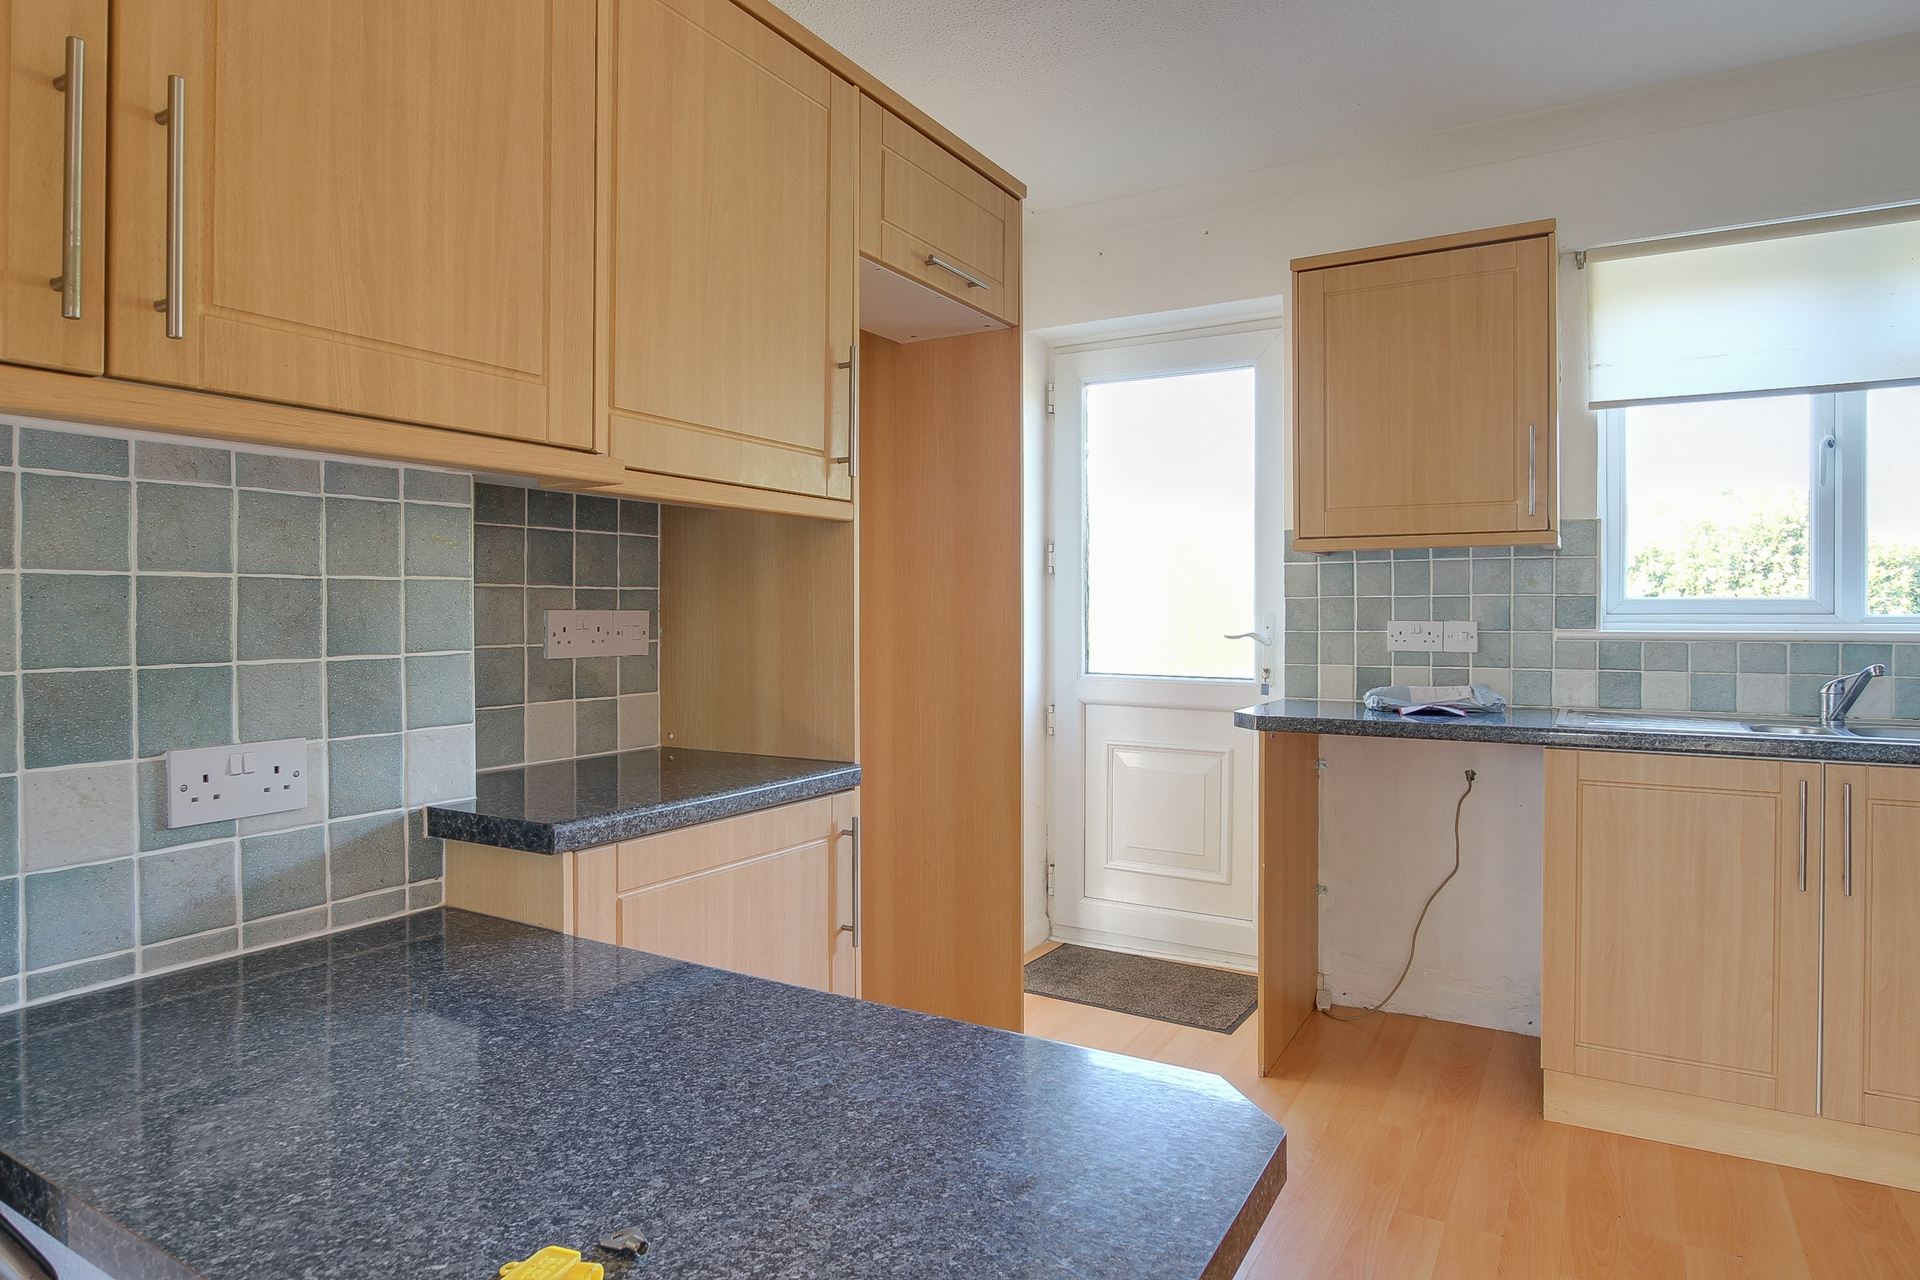 3 bed bungalow to rent in Cheesmans Close, Minster, CT12 1